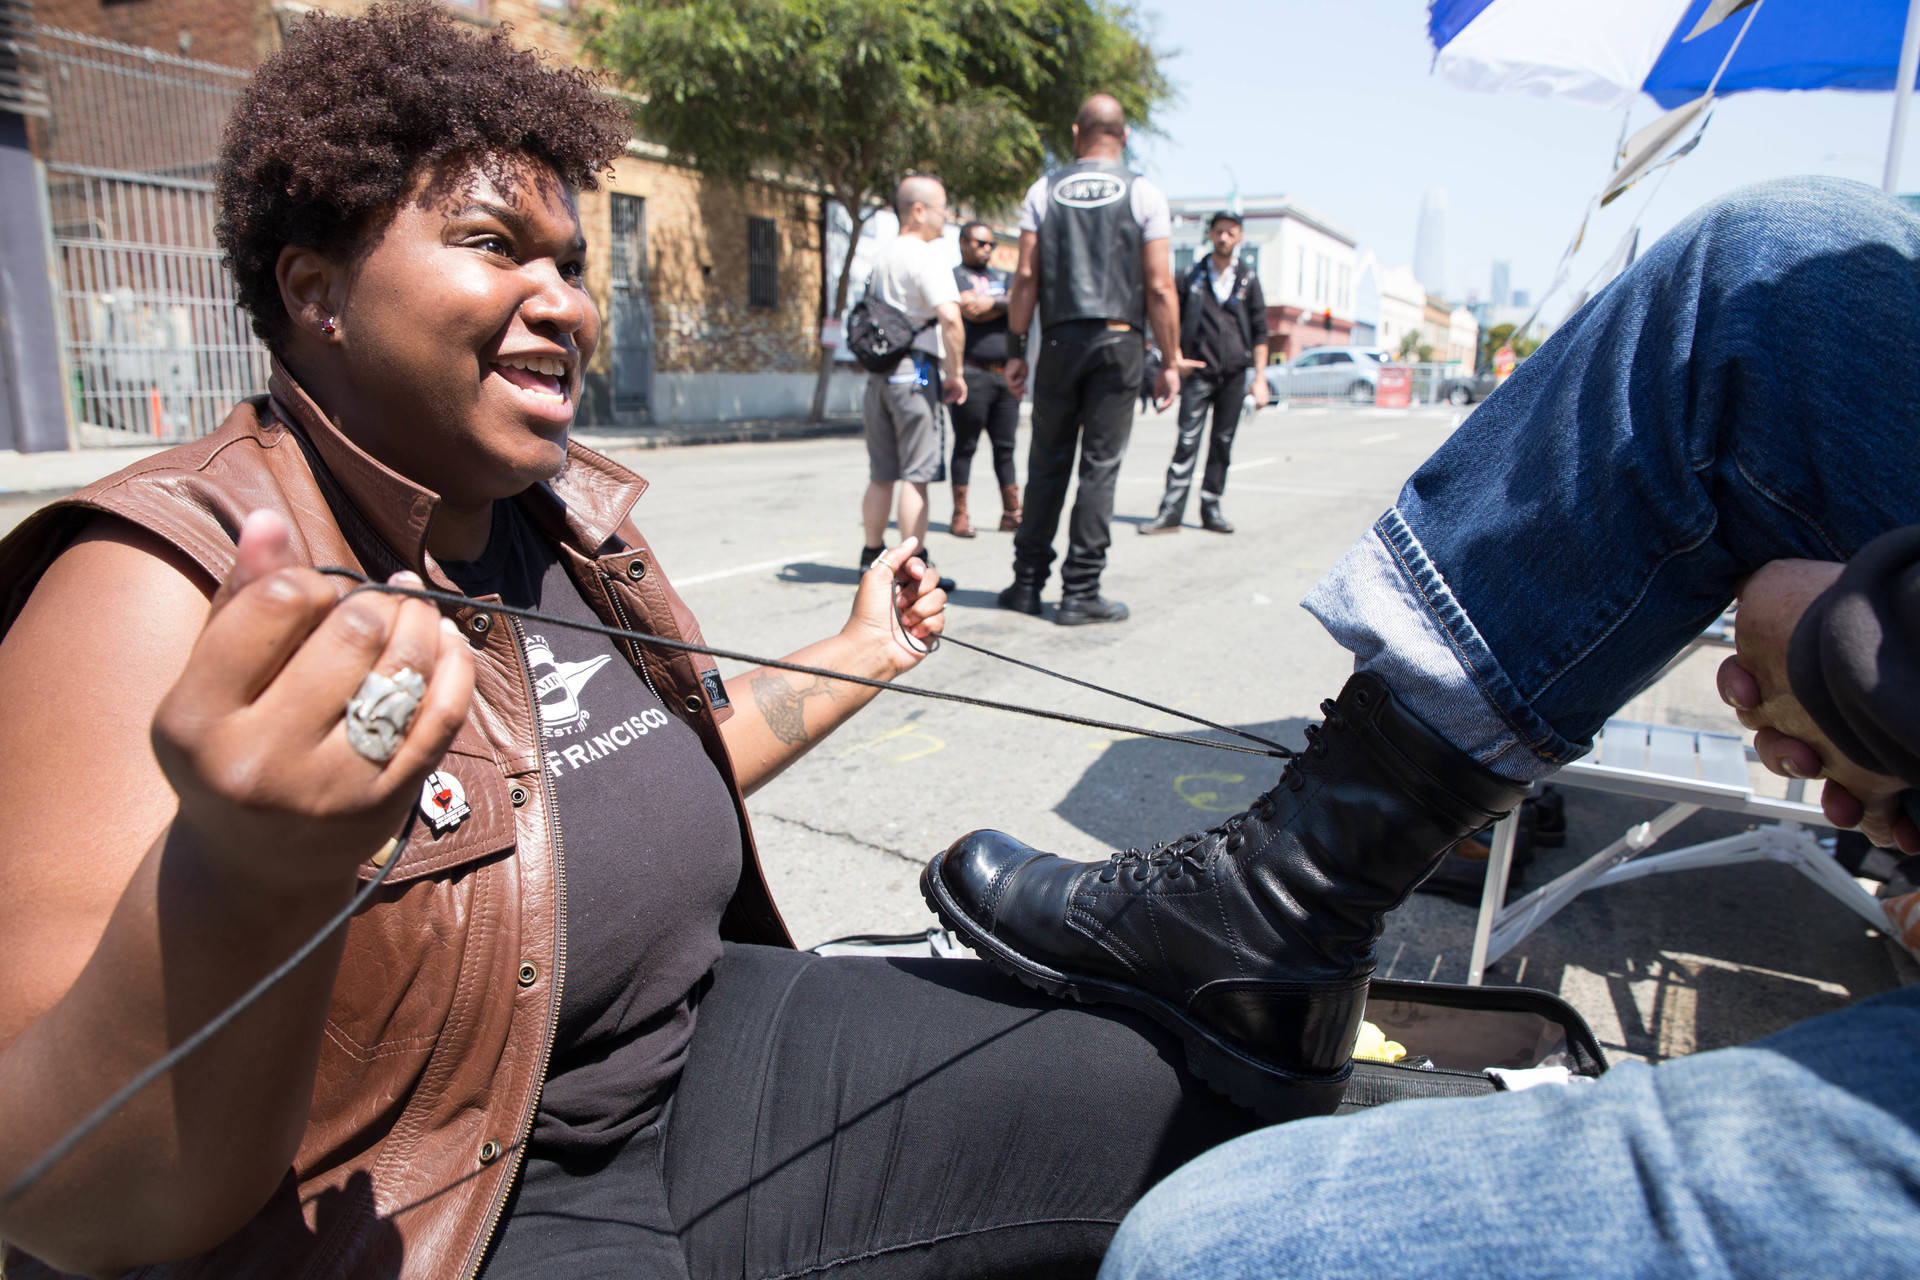 """Victoria Carter cares for a pair of leather boots at the Leather Hub at Sunday Streets SOMA event in San Francisco. Carter was voted the 2018 San Francisco Bootblack, and is an organizer of the San Francisco BootLab, which services the gear in the leather community. """"I think of us kind of like hair dressers or bartenders or whatever. You sit down with us, we take 20 minutes. We talk about your day, some gossip, some upcoming events in the scene. Through that we become history keepers,"""" she says. Sarah Craig/KQED"""